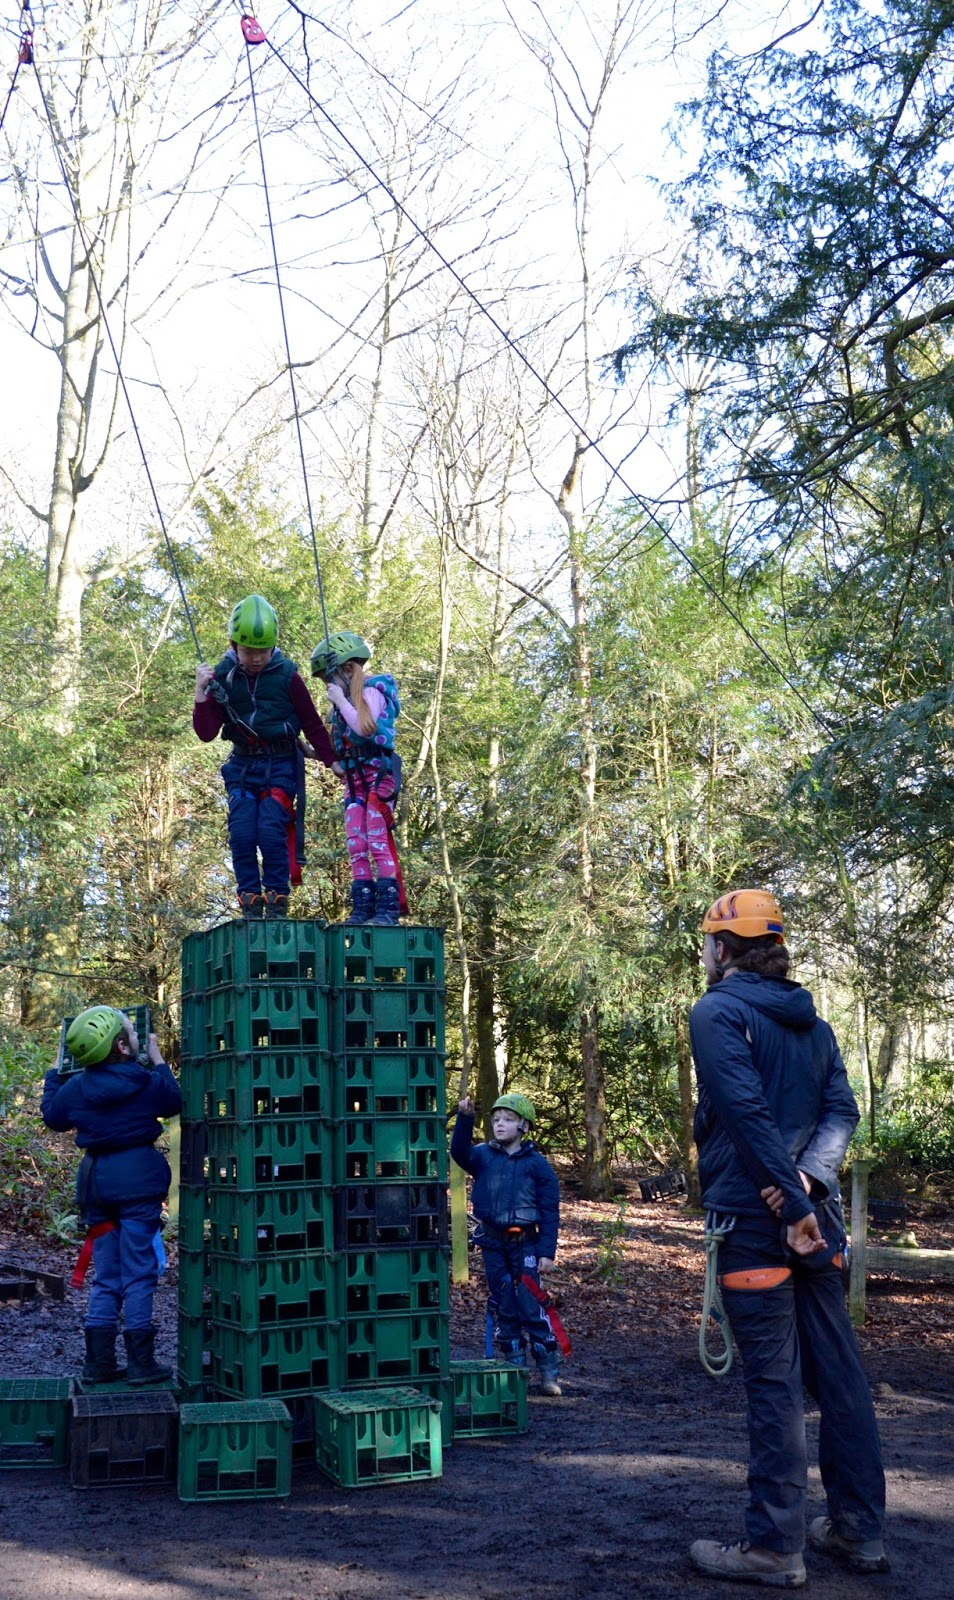 Beamish Wild | School Holiday Club & Activities in County Durham | North East England - crate stack in woods